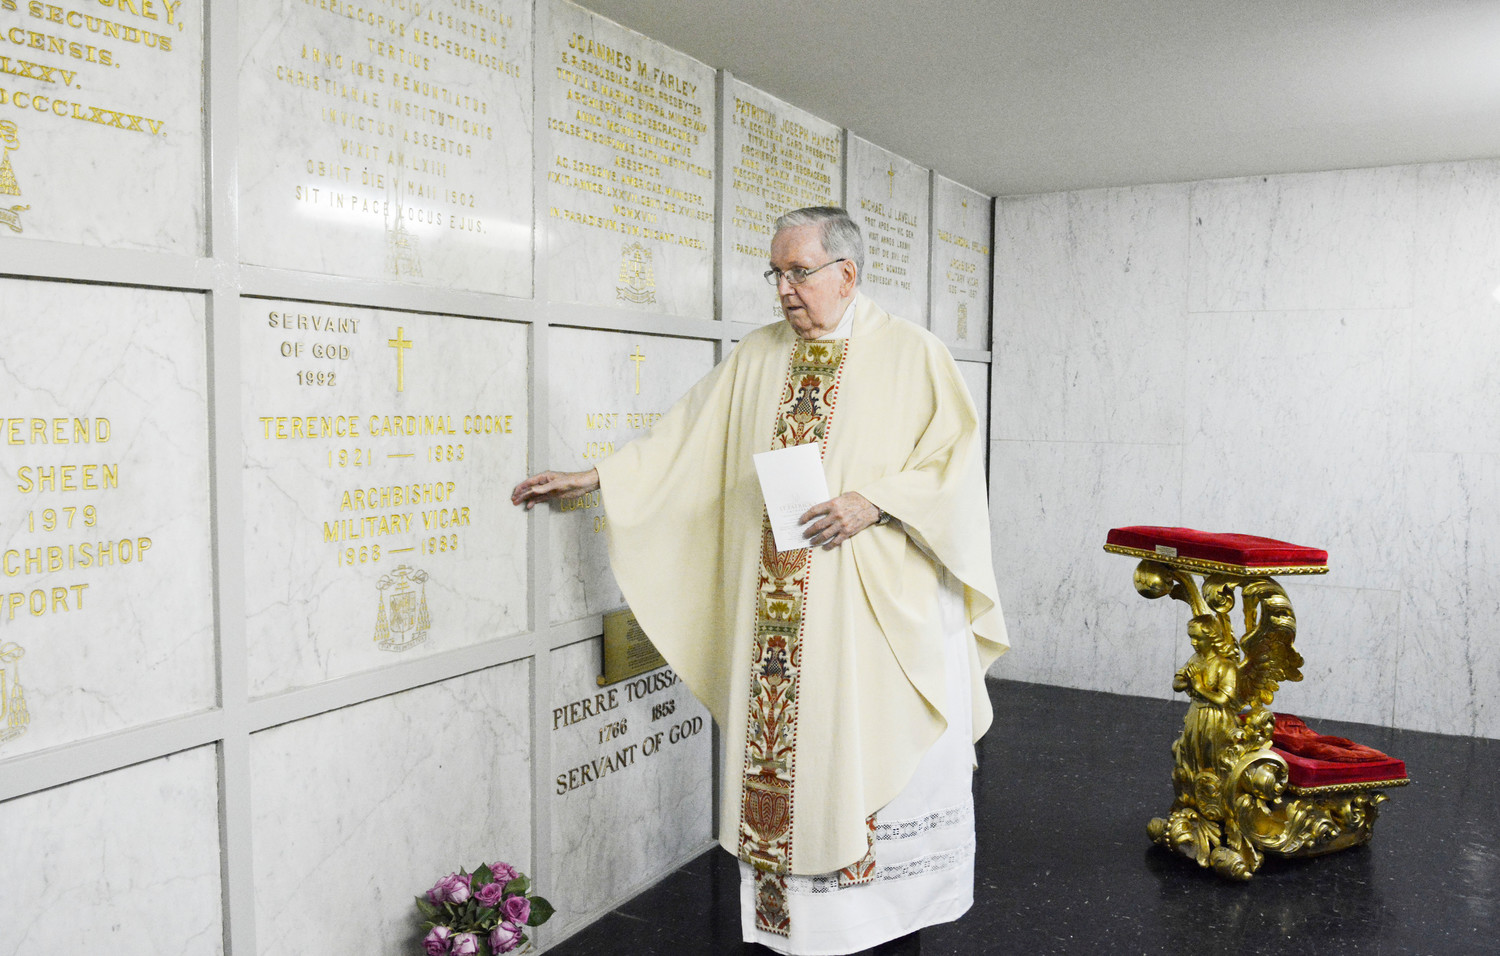 Msgr. Peter G. Finn, pastor of Blessed Sacrament parish on Staten Island, prays at Cardinal Terence Cooke's crypt below the main altar of St. Patrick's Cathedral.